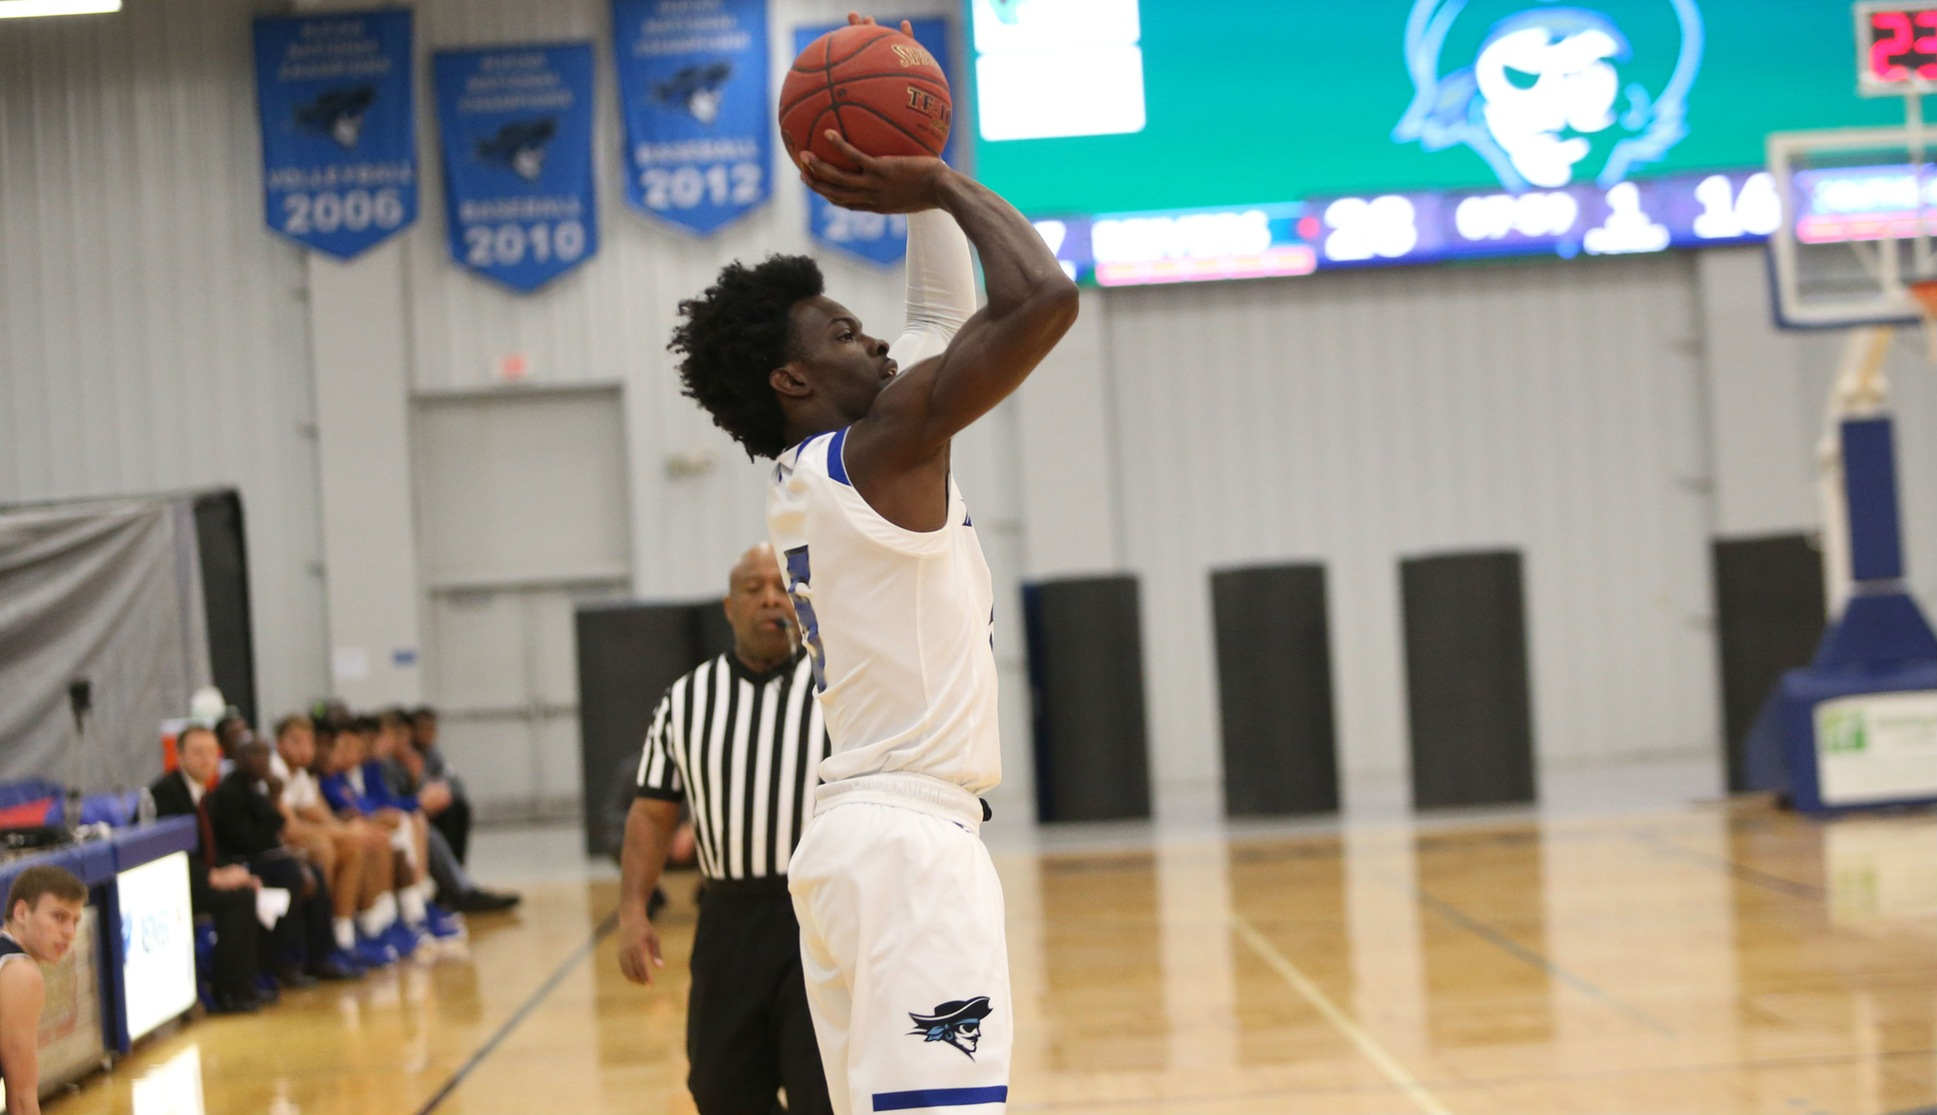 "Iowa Western's Travon Broadway scored a game high 22 points on 9/12 shooting, as the Reivers claimed their third classic title this season with a 76-68 ""wire-to-wire"" victory over Northeastern (CO)."